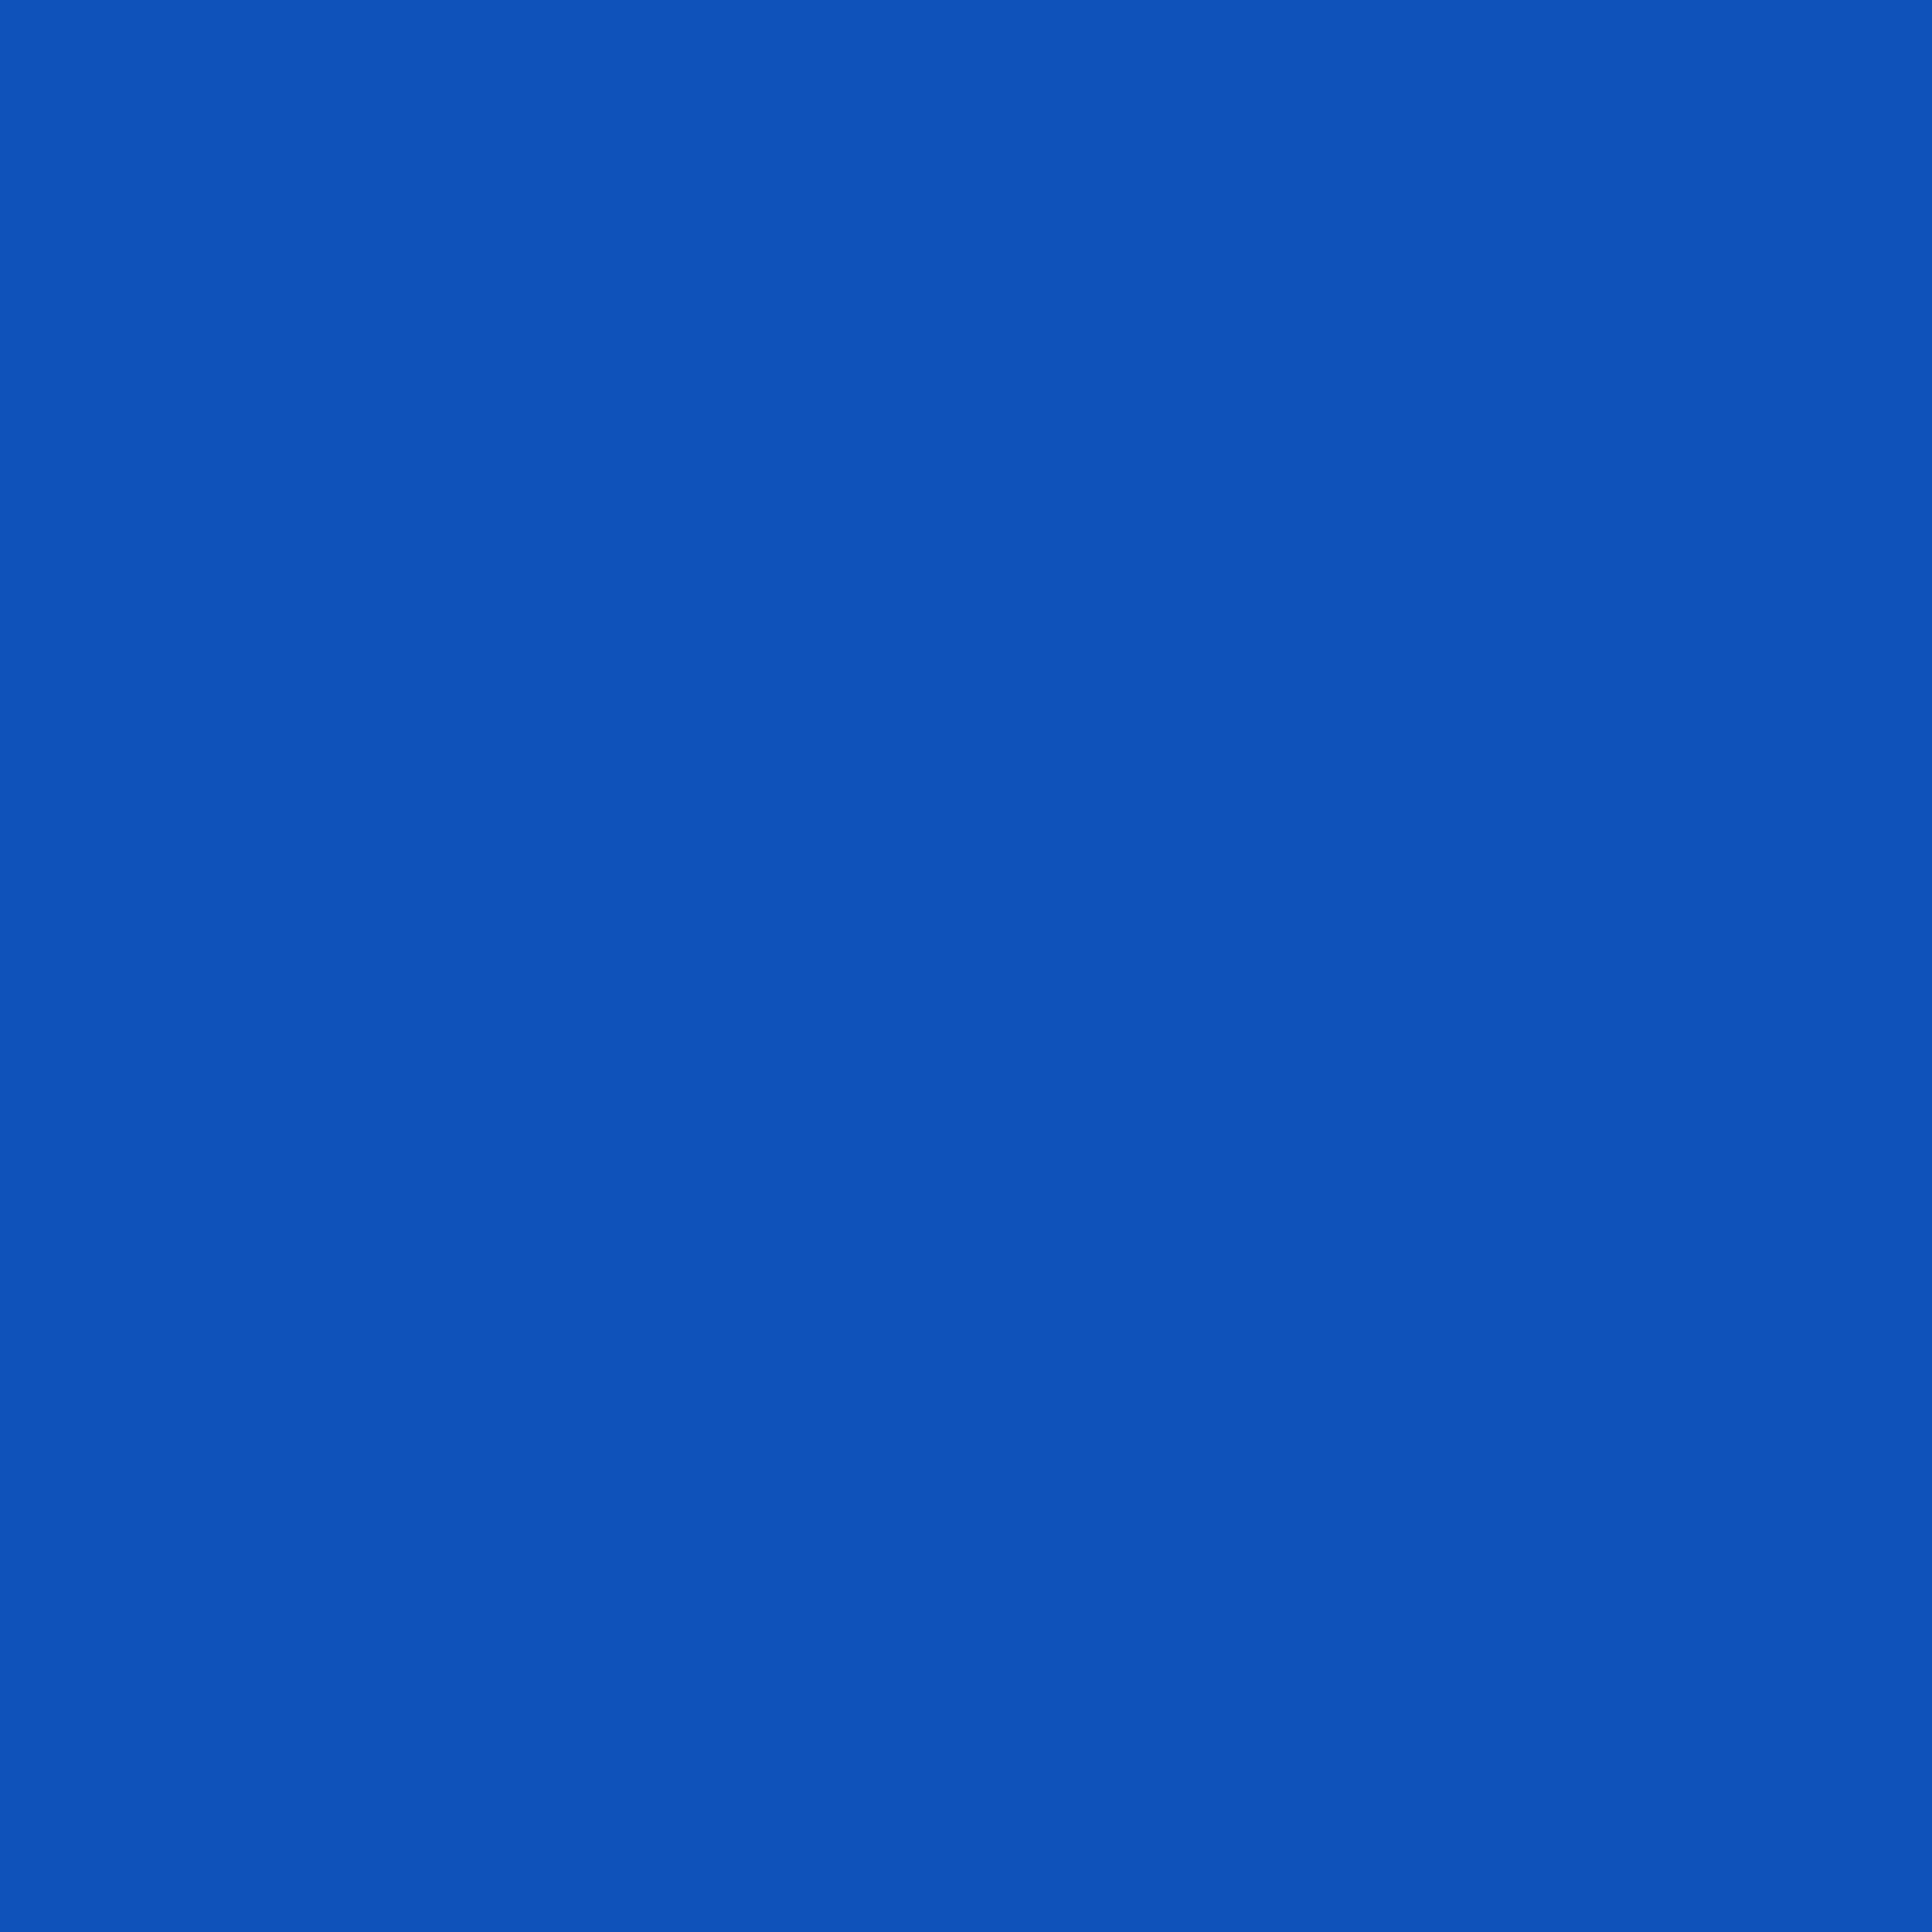 2732x2732 Sapphire Solid Color Background